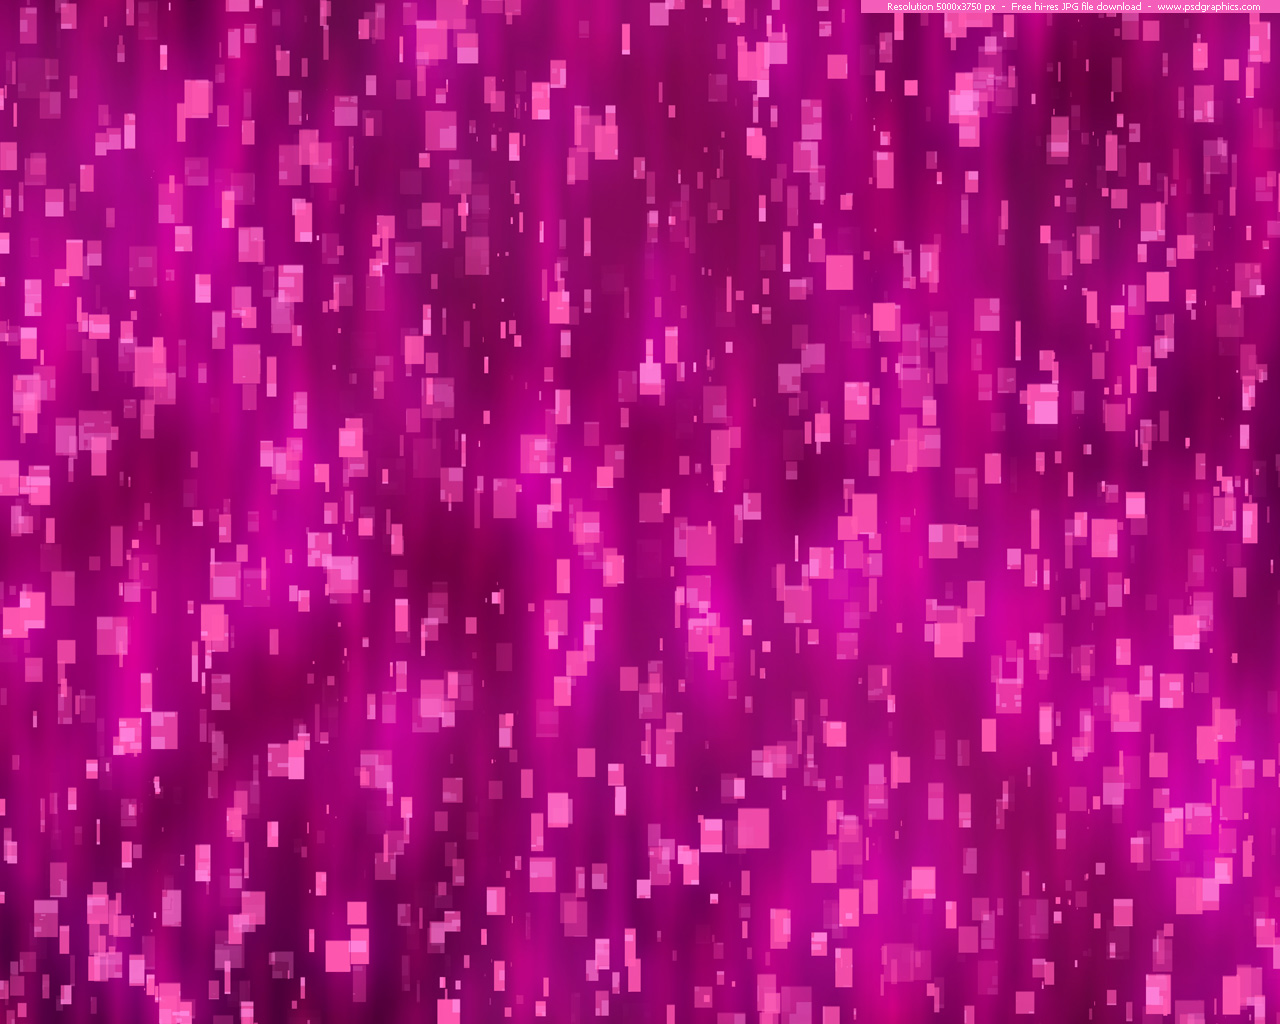 ... pink purple rose keywords pink blurry lights abstract lights photoshop